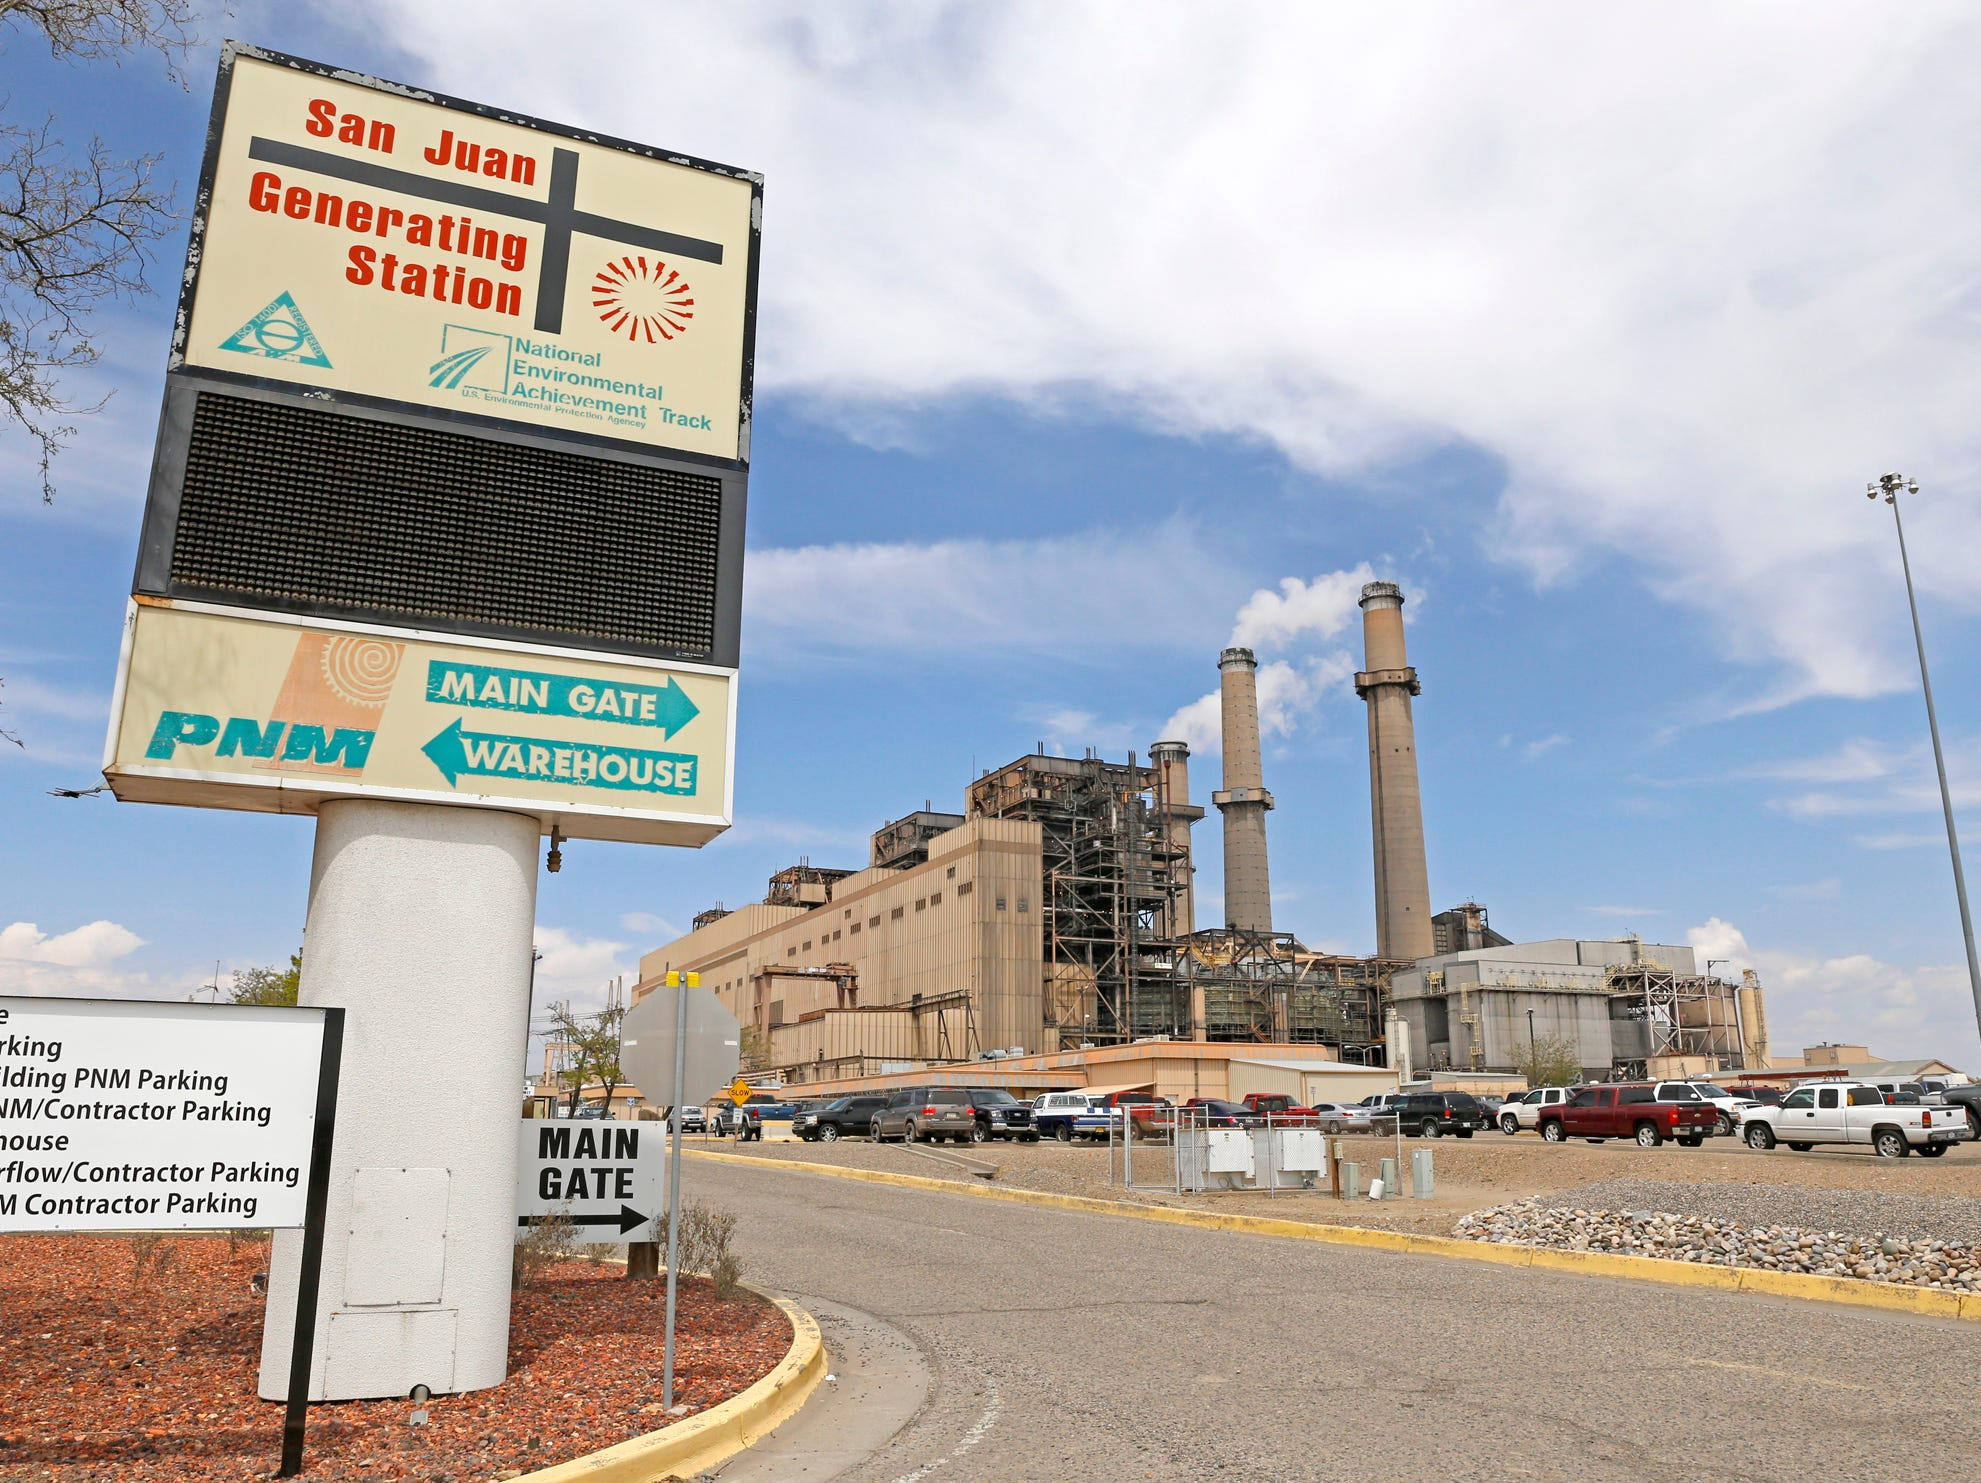 The San Juan Generating Station is seen, Monday, April 20, 2015, on County Road 6800 in Waterflow.